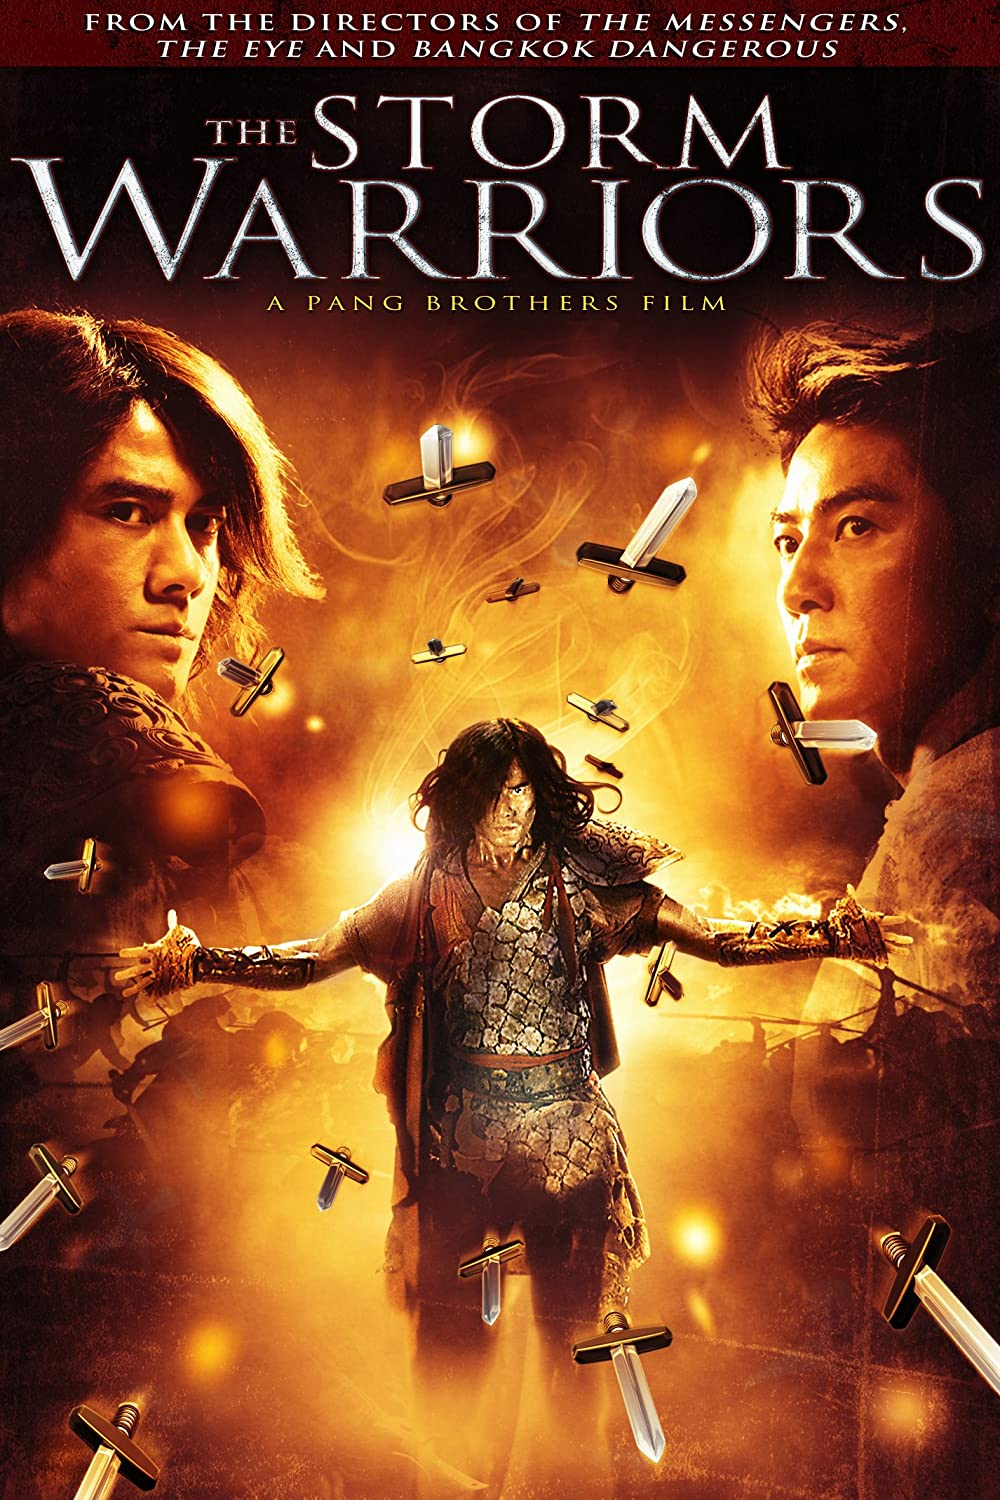 The Storm Warriors 2009 Hindi Dual Audio 480p BluRay ESub 400MB x264 AAC